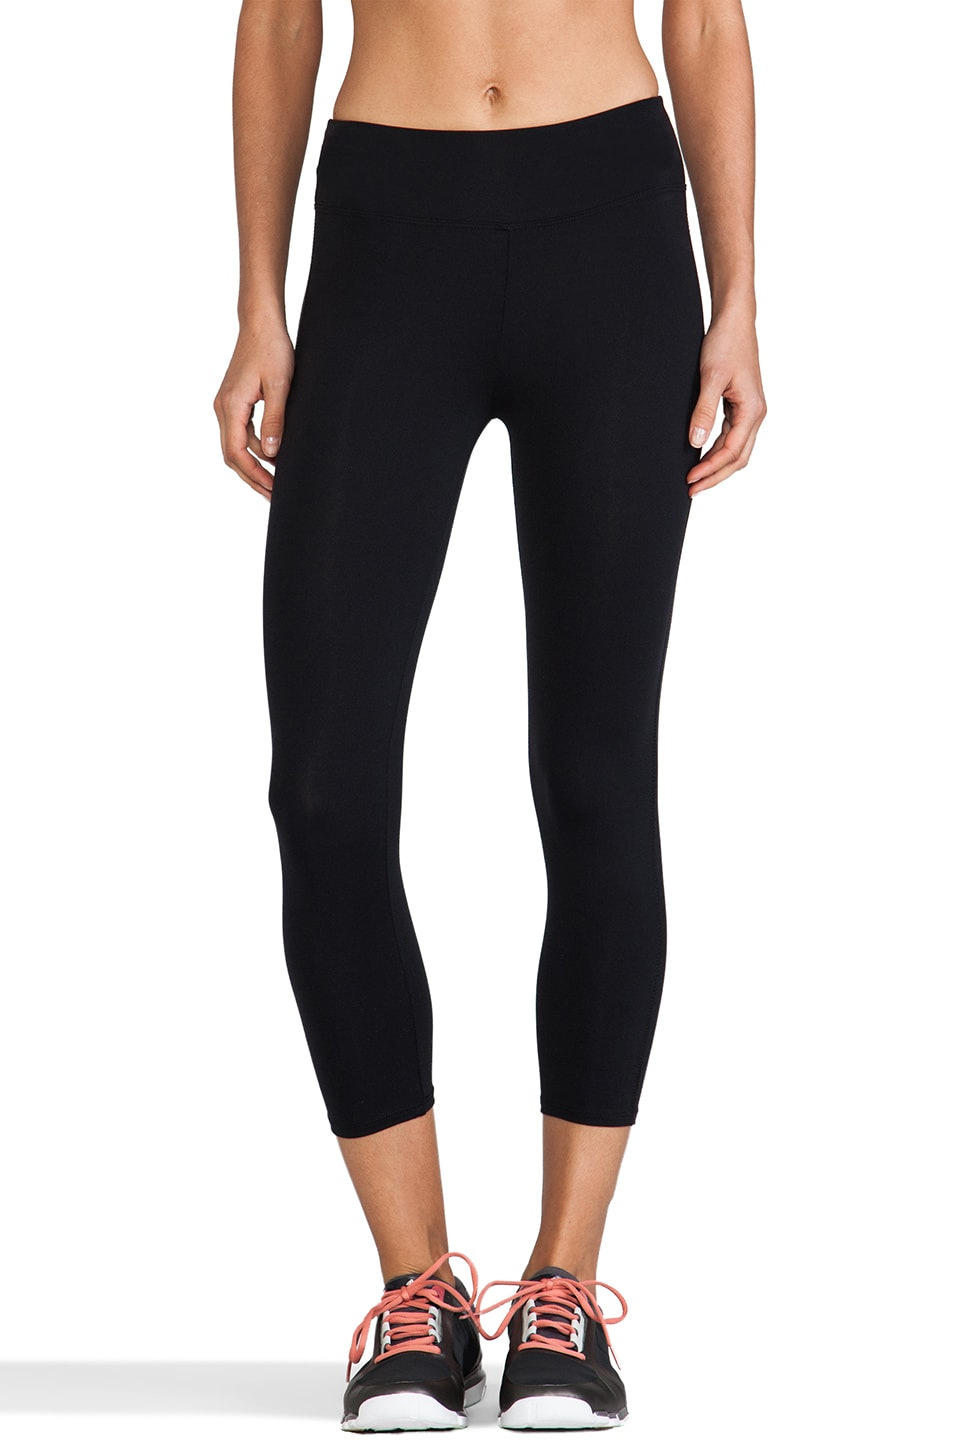 SOLOW Eclon Basics High Impact Crop Legging in Black